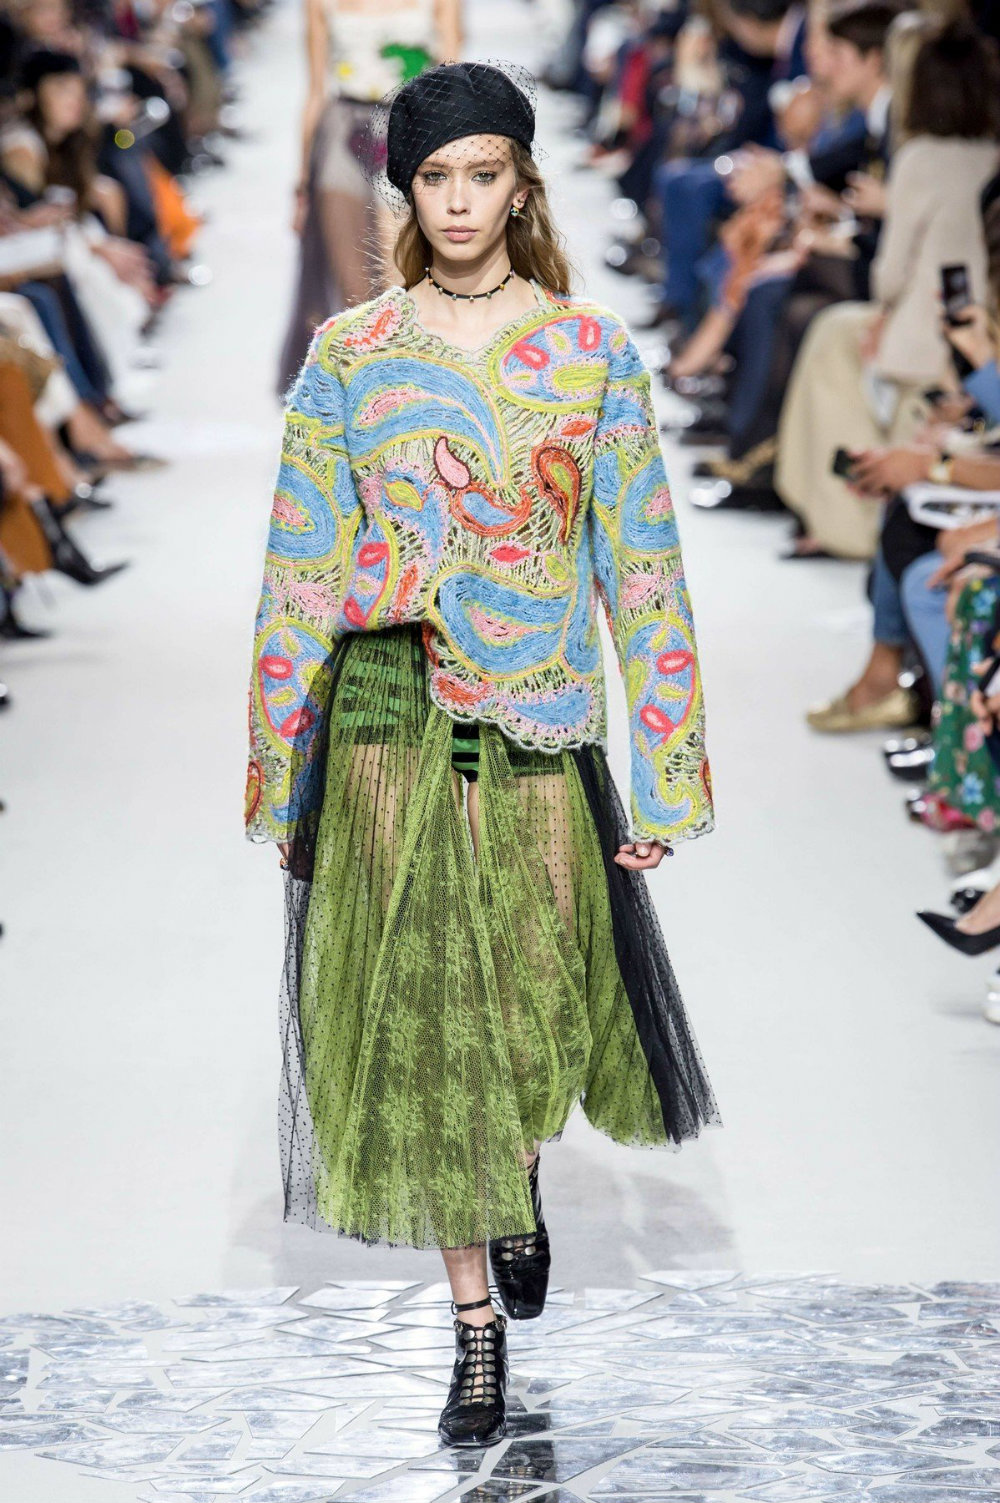 Summer Fashion Lawn Kurti Designs Trends Latest Collection: Paris Fashion Week Spring/Summer 2018